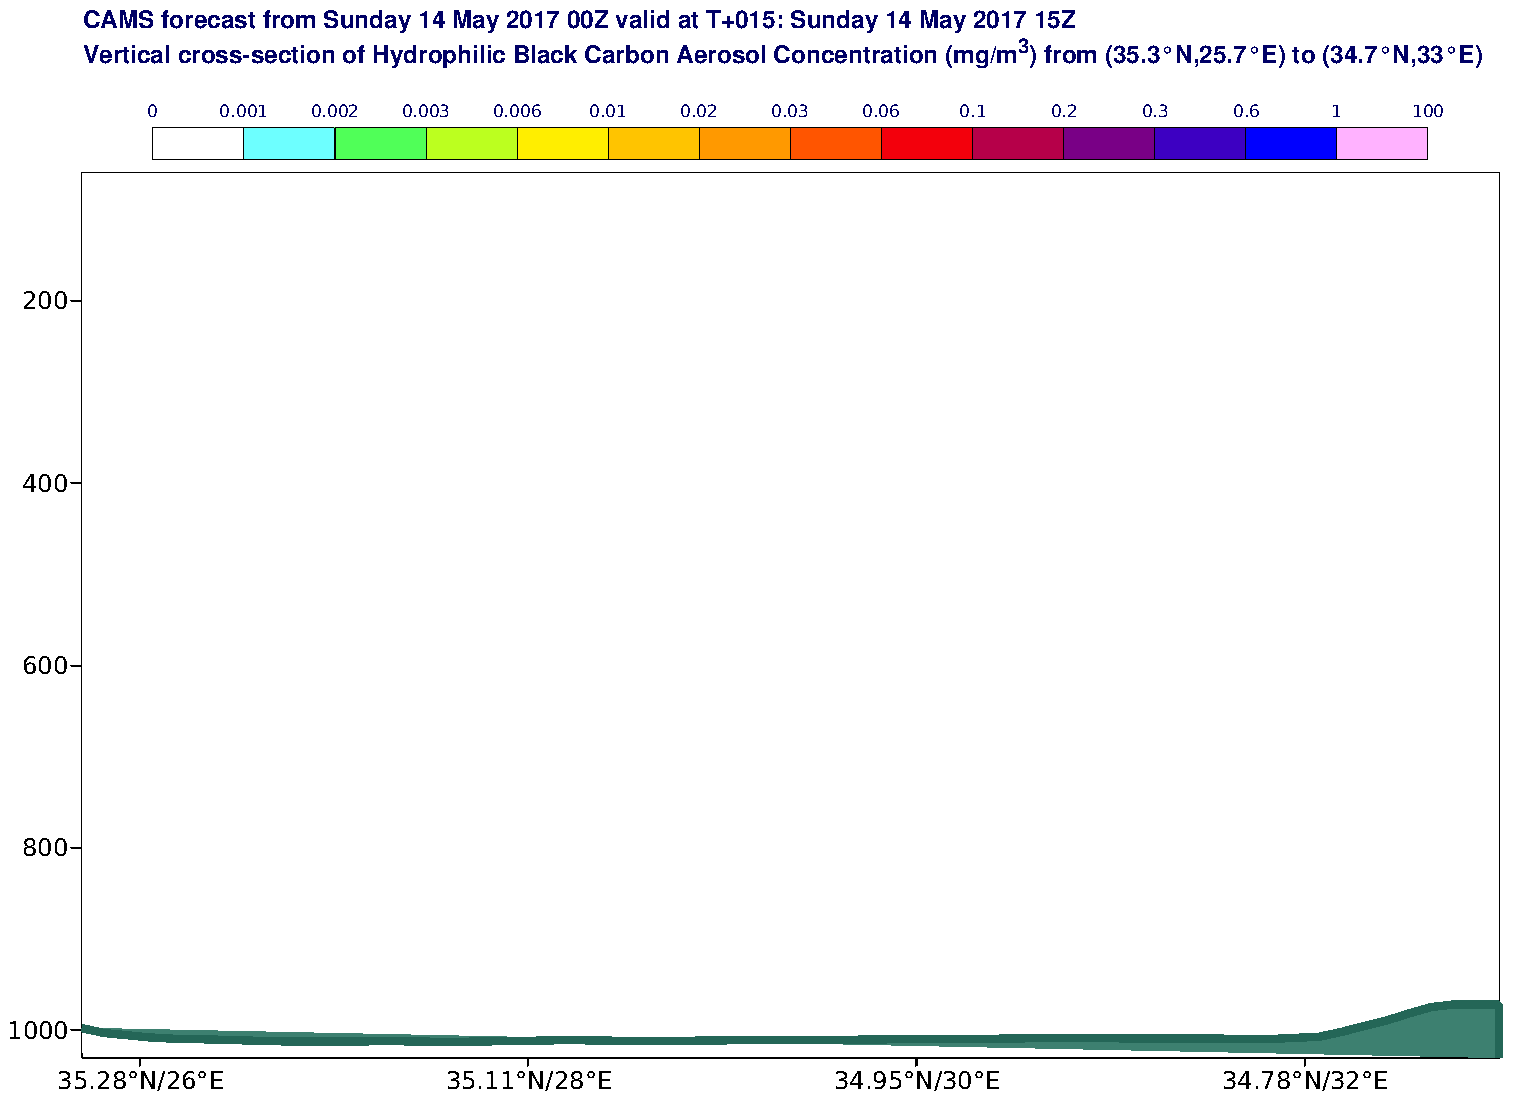 Vertical cross-section of Hydrophilic Black Carbon Aerosol Concentration (mg/m3) valid at T15 - 2017-05-14 15:00